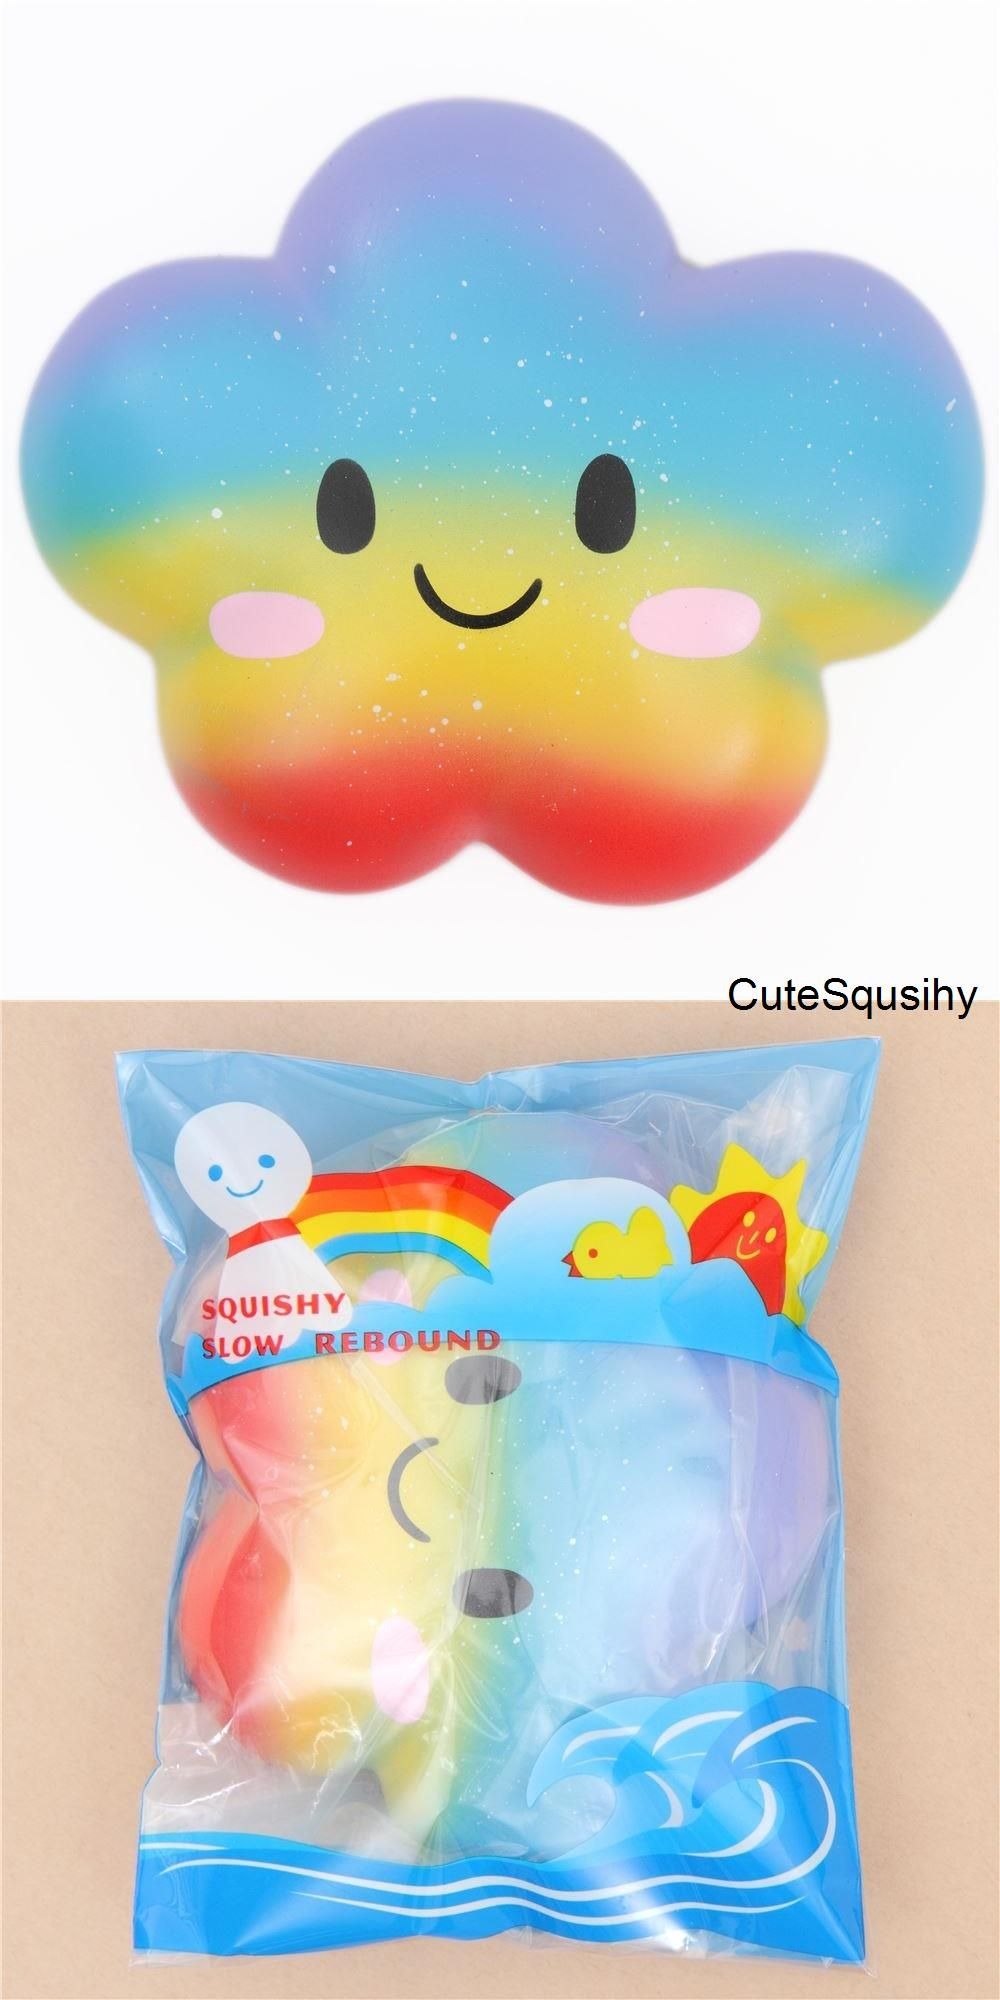 Squishy With Images Cute Squishies Squishies Kawaii Shops